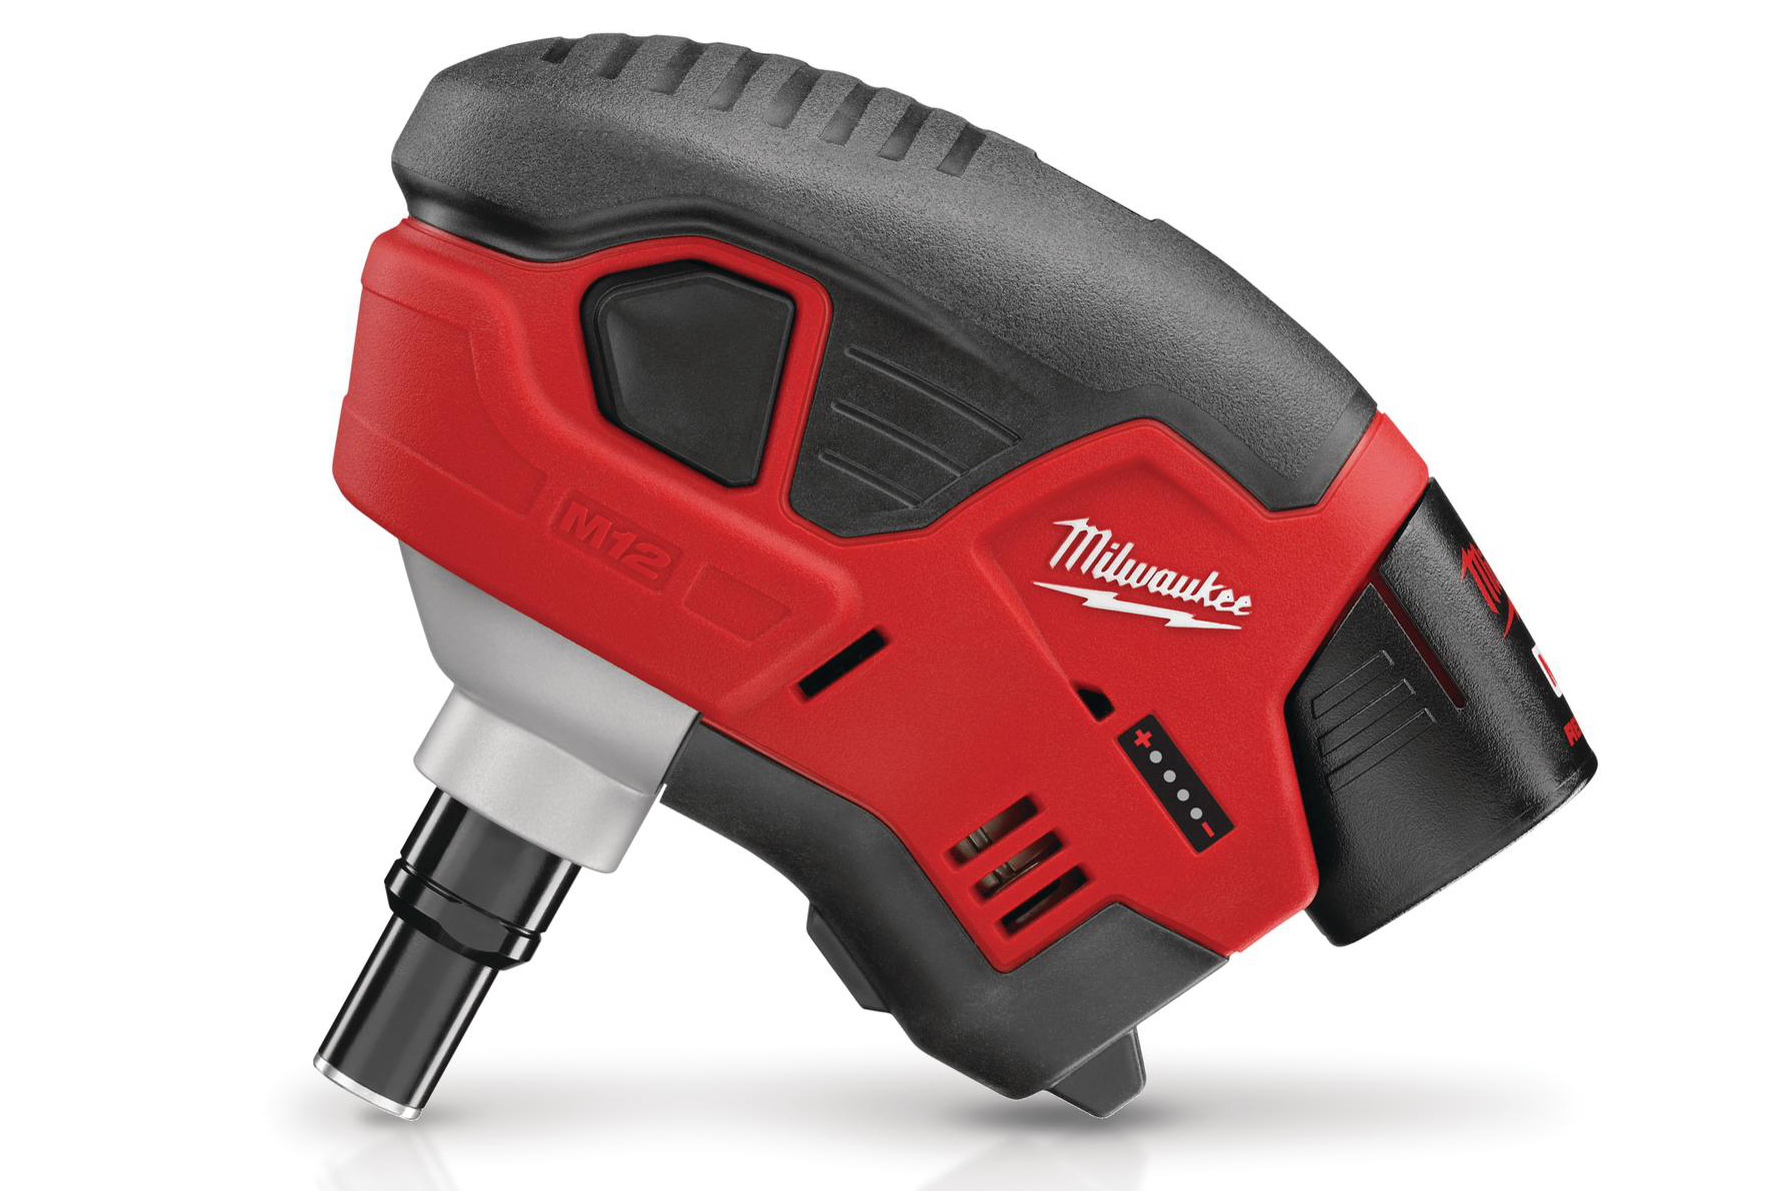 handy work milwaukee m12 cordless palm nailer remodeling power tools tools and equipment framing cordless tools milwaukee waukesha west allis wi